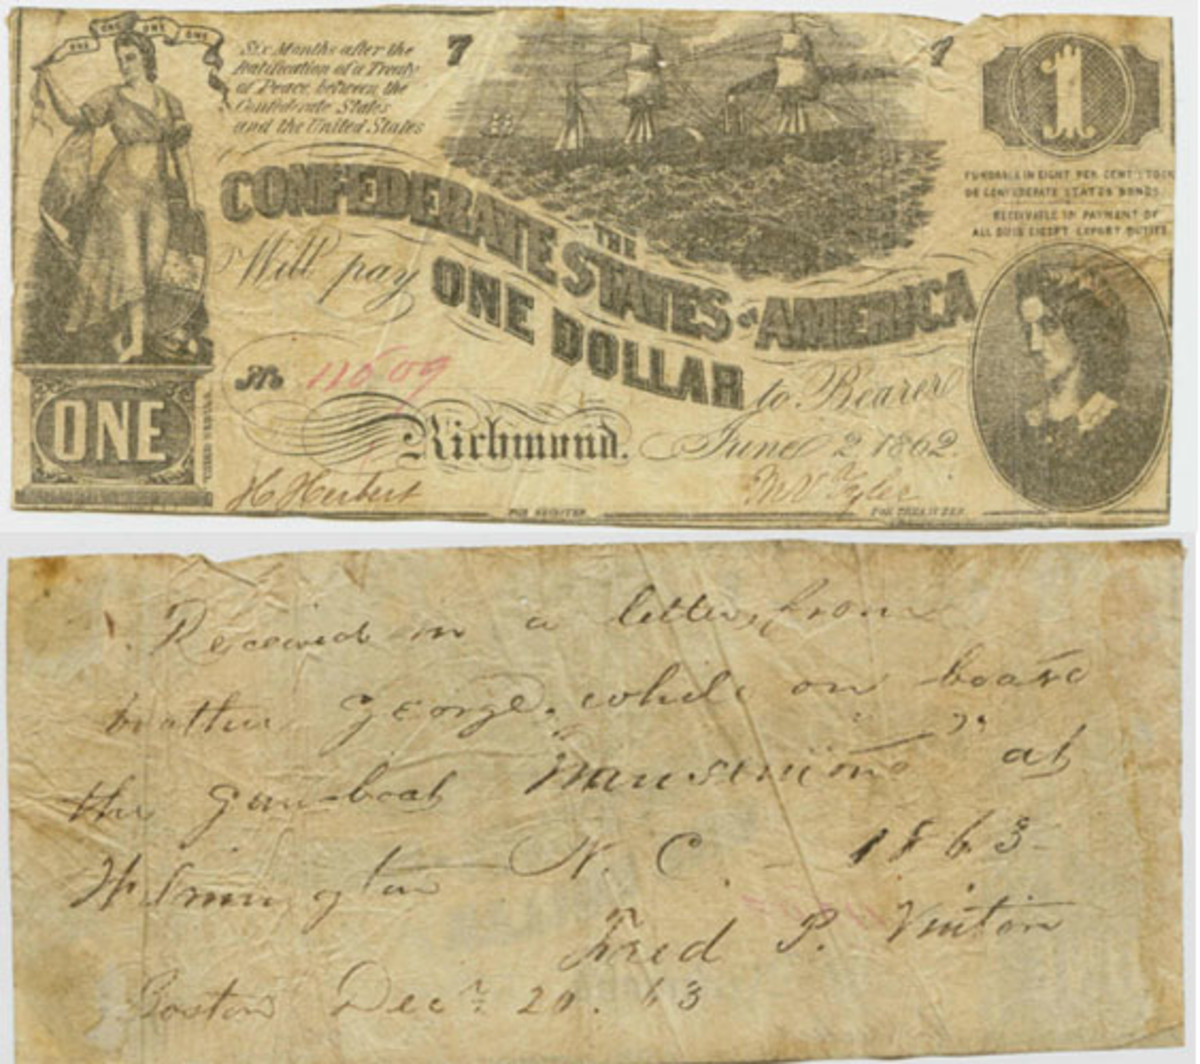 The reverse of the Confederate $1 note with the inscription from Fred Vinton describing the note's travels.